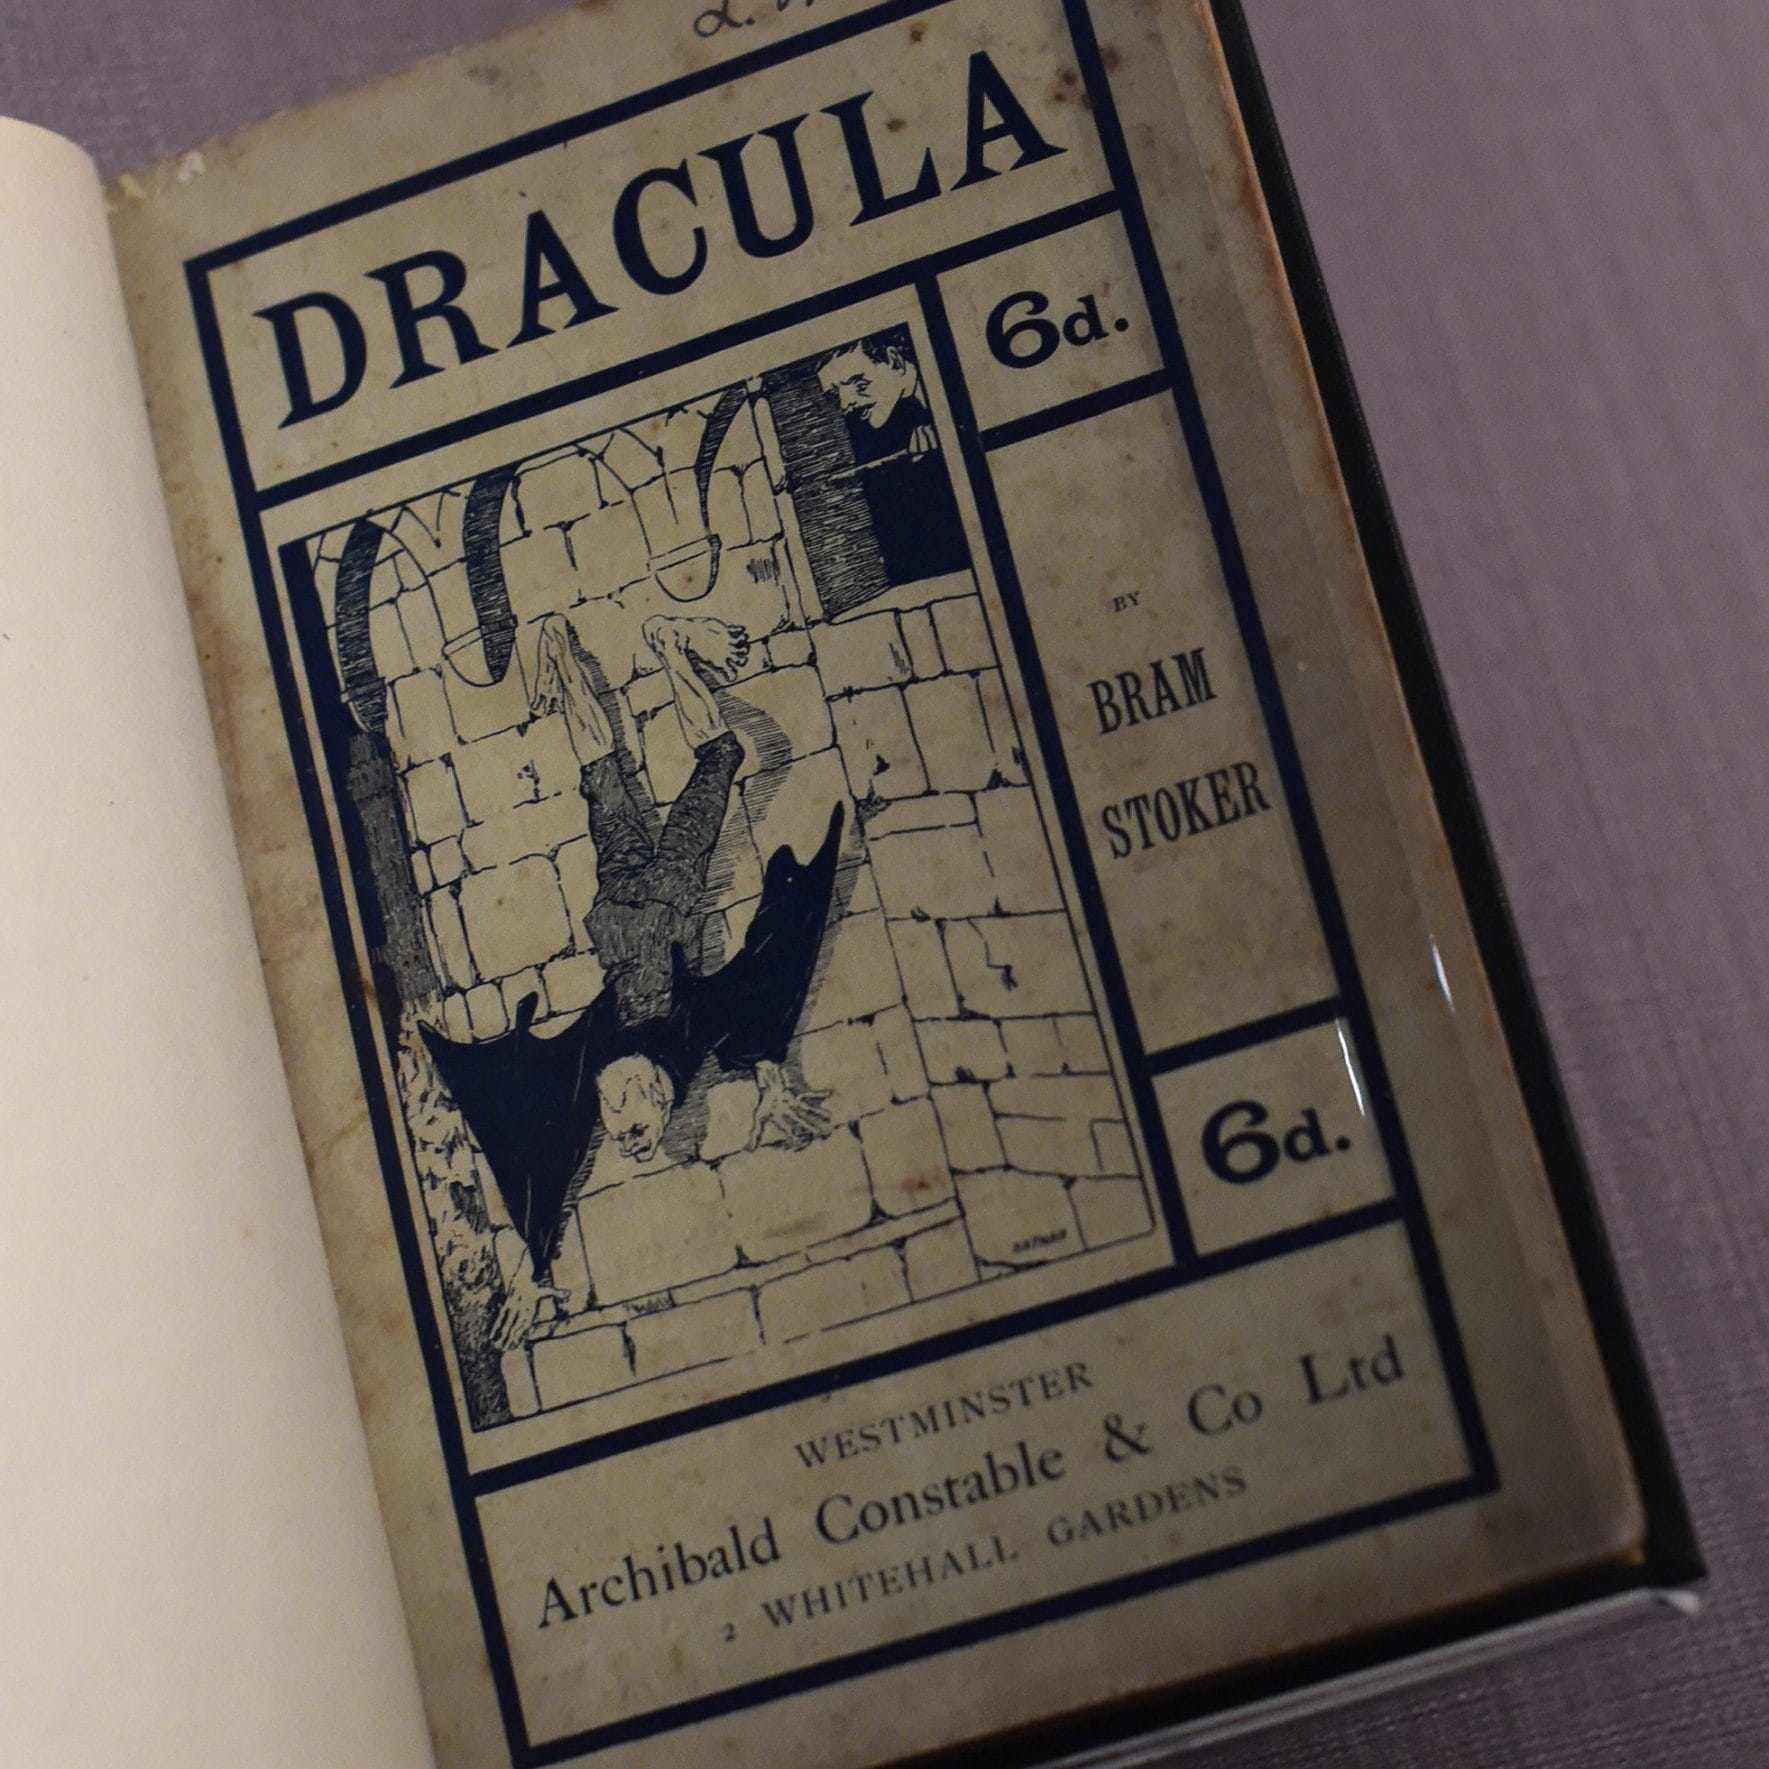 Dracula to be hero of his own story, say makers of new BBC/Netfilx adaptation